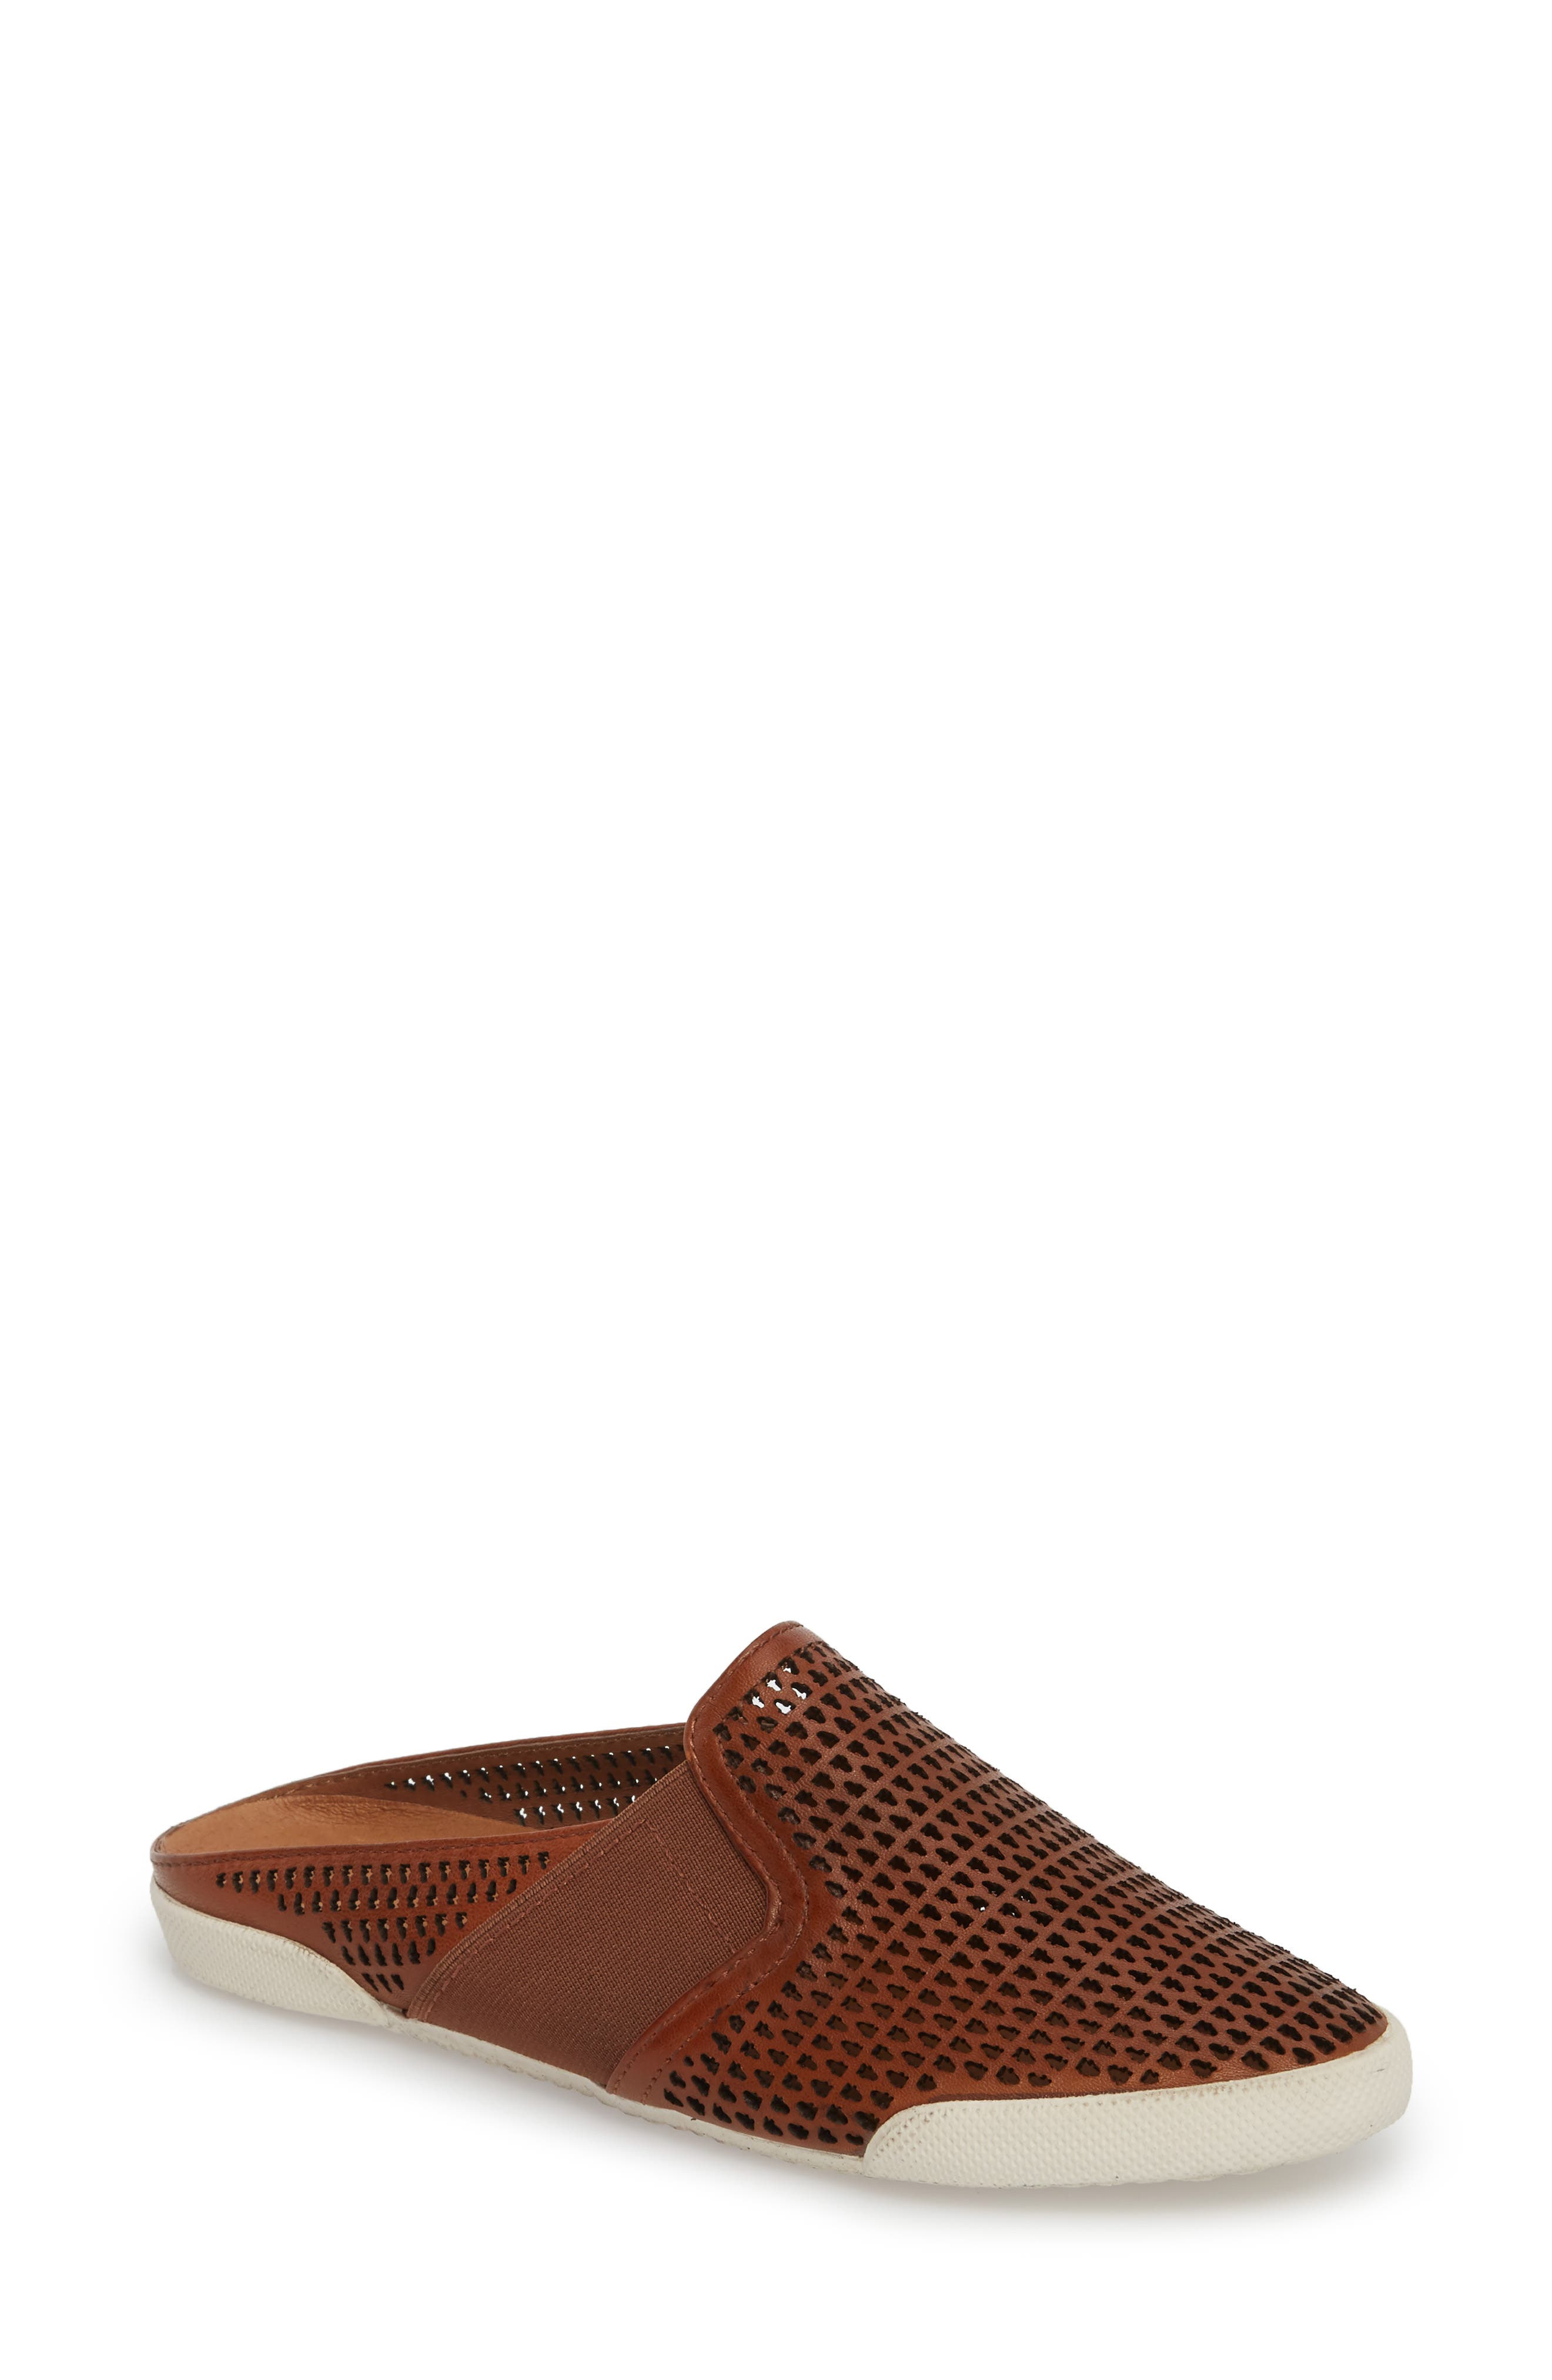 Melanie Perforated Mule,                             Main thumbnail 1, color,                             Cognac Leather